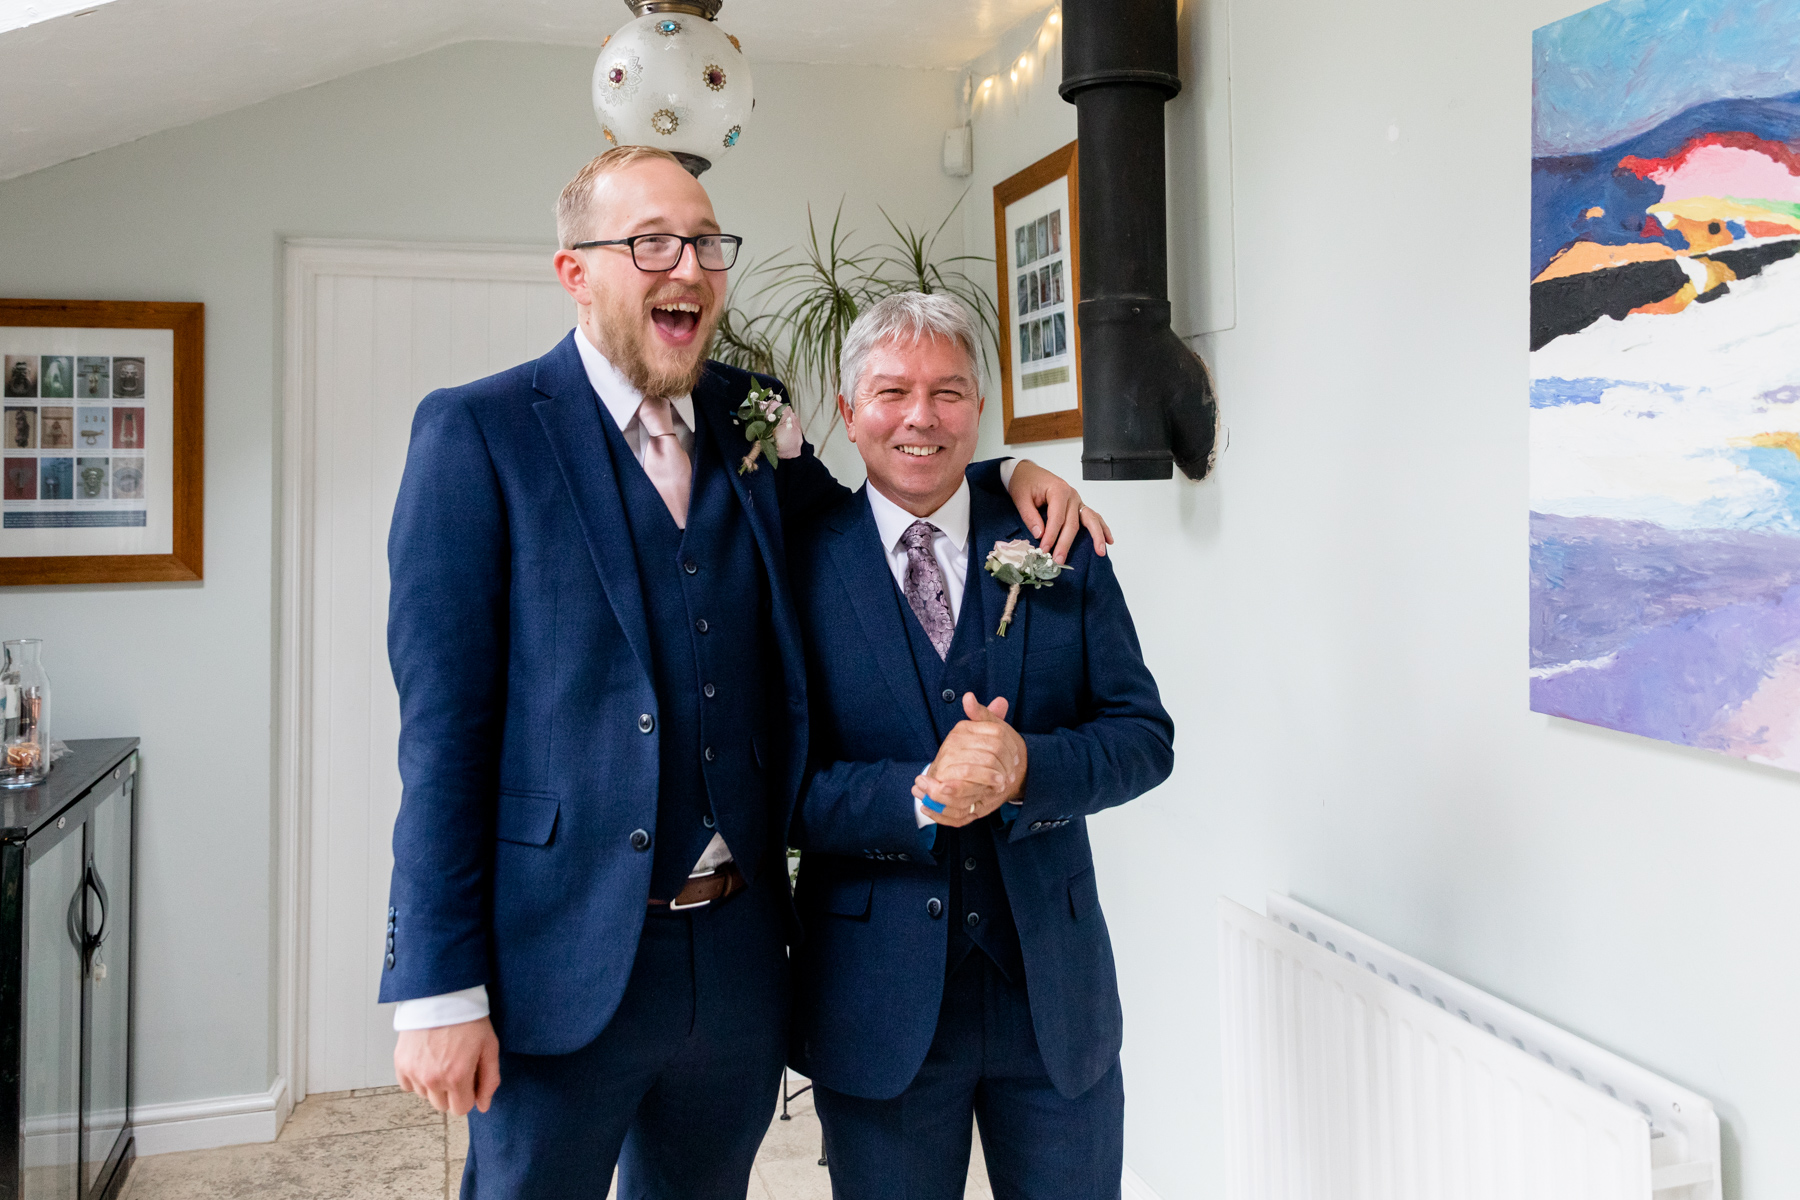 Groom and father-in-law